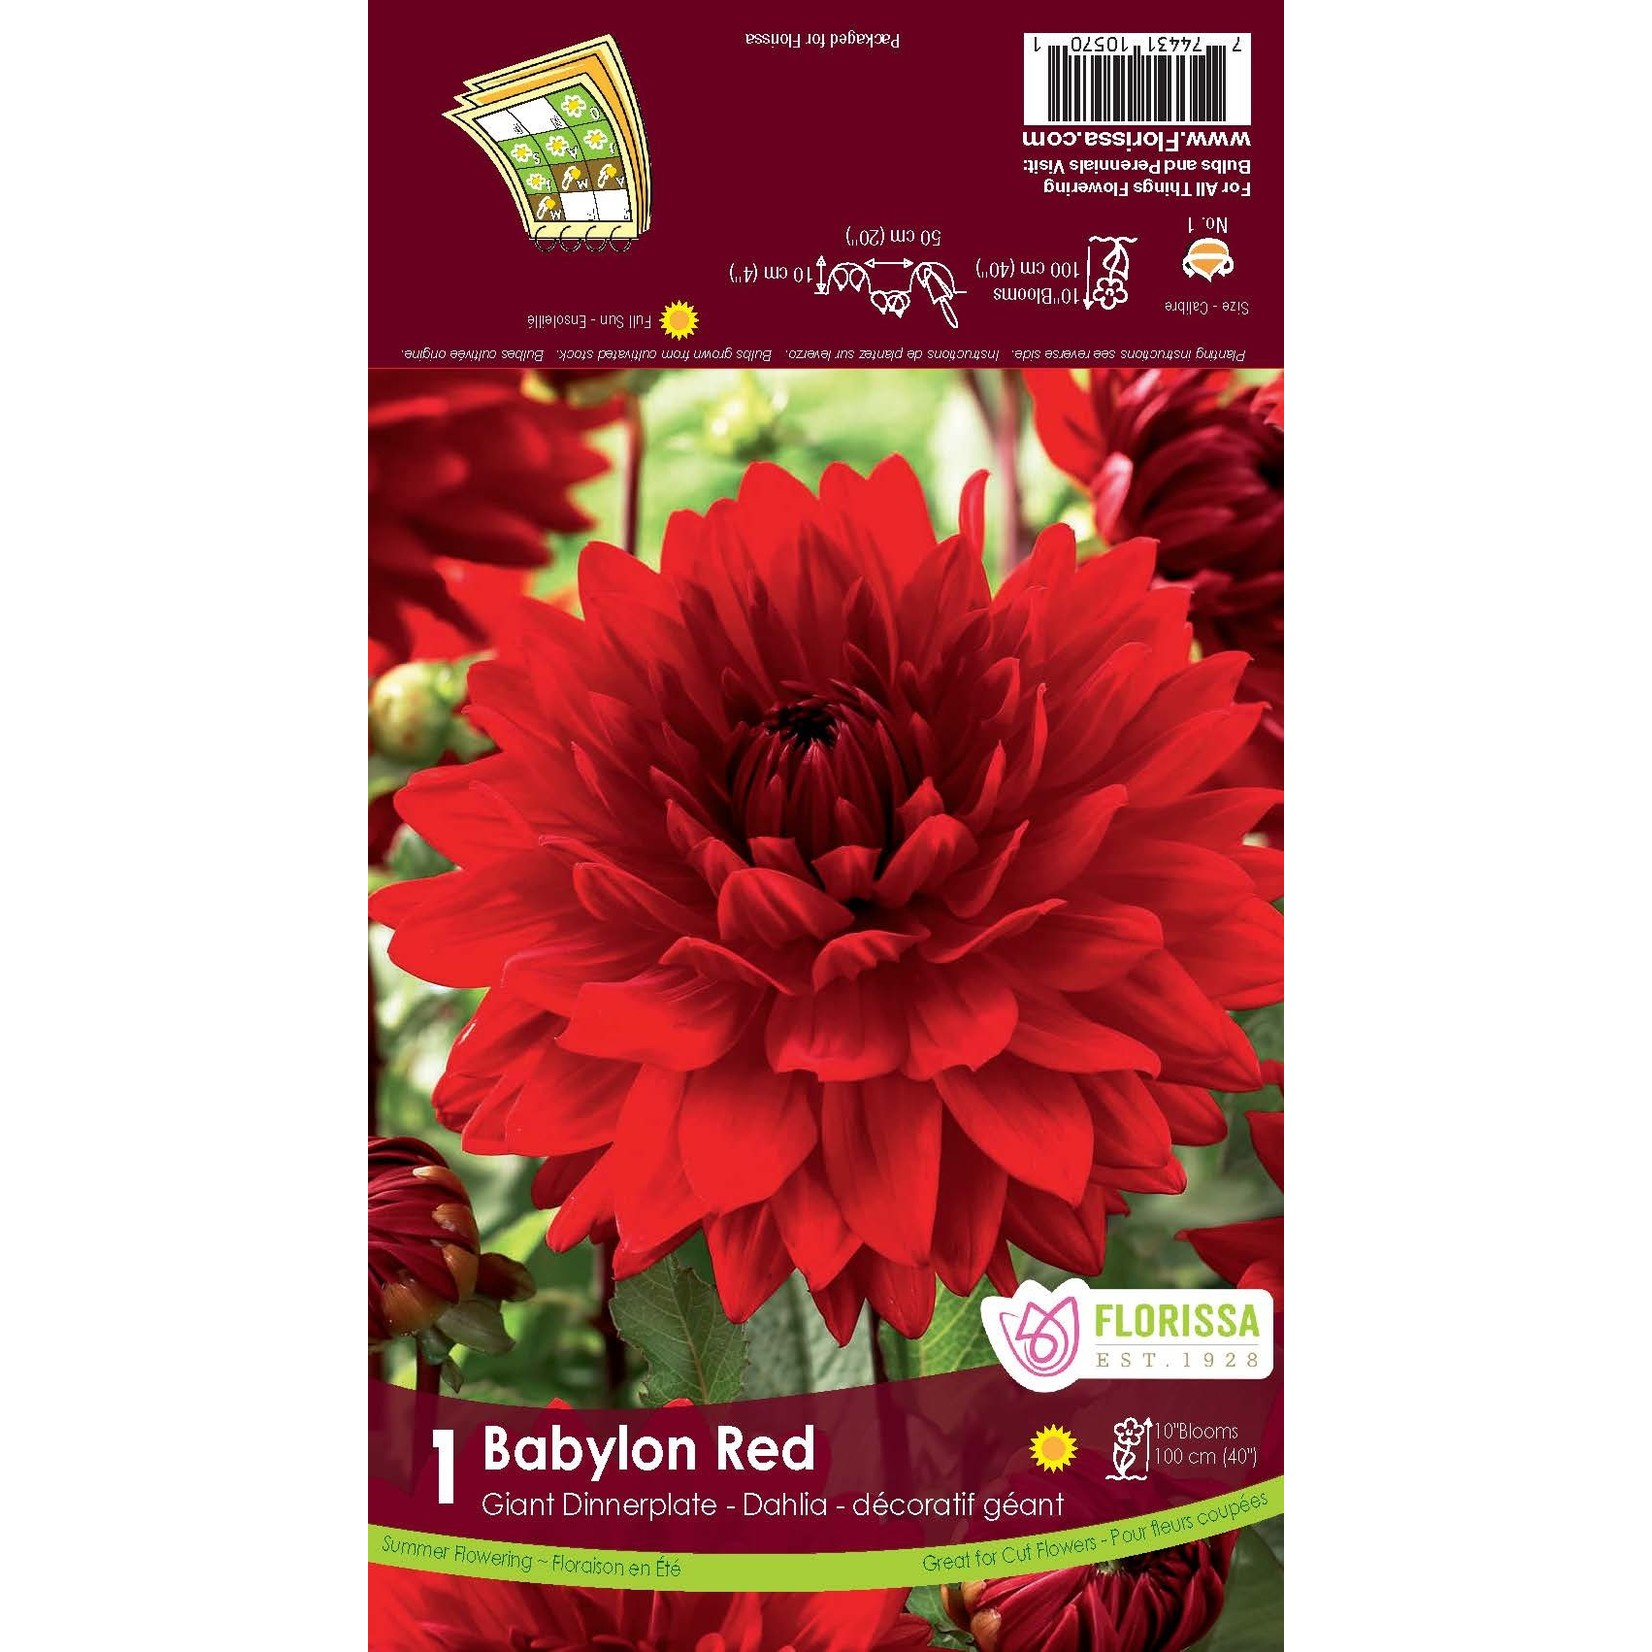 Giant Dinnerplate Dahlia (bulb pkg) Babylon Red (1 bulb)